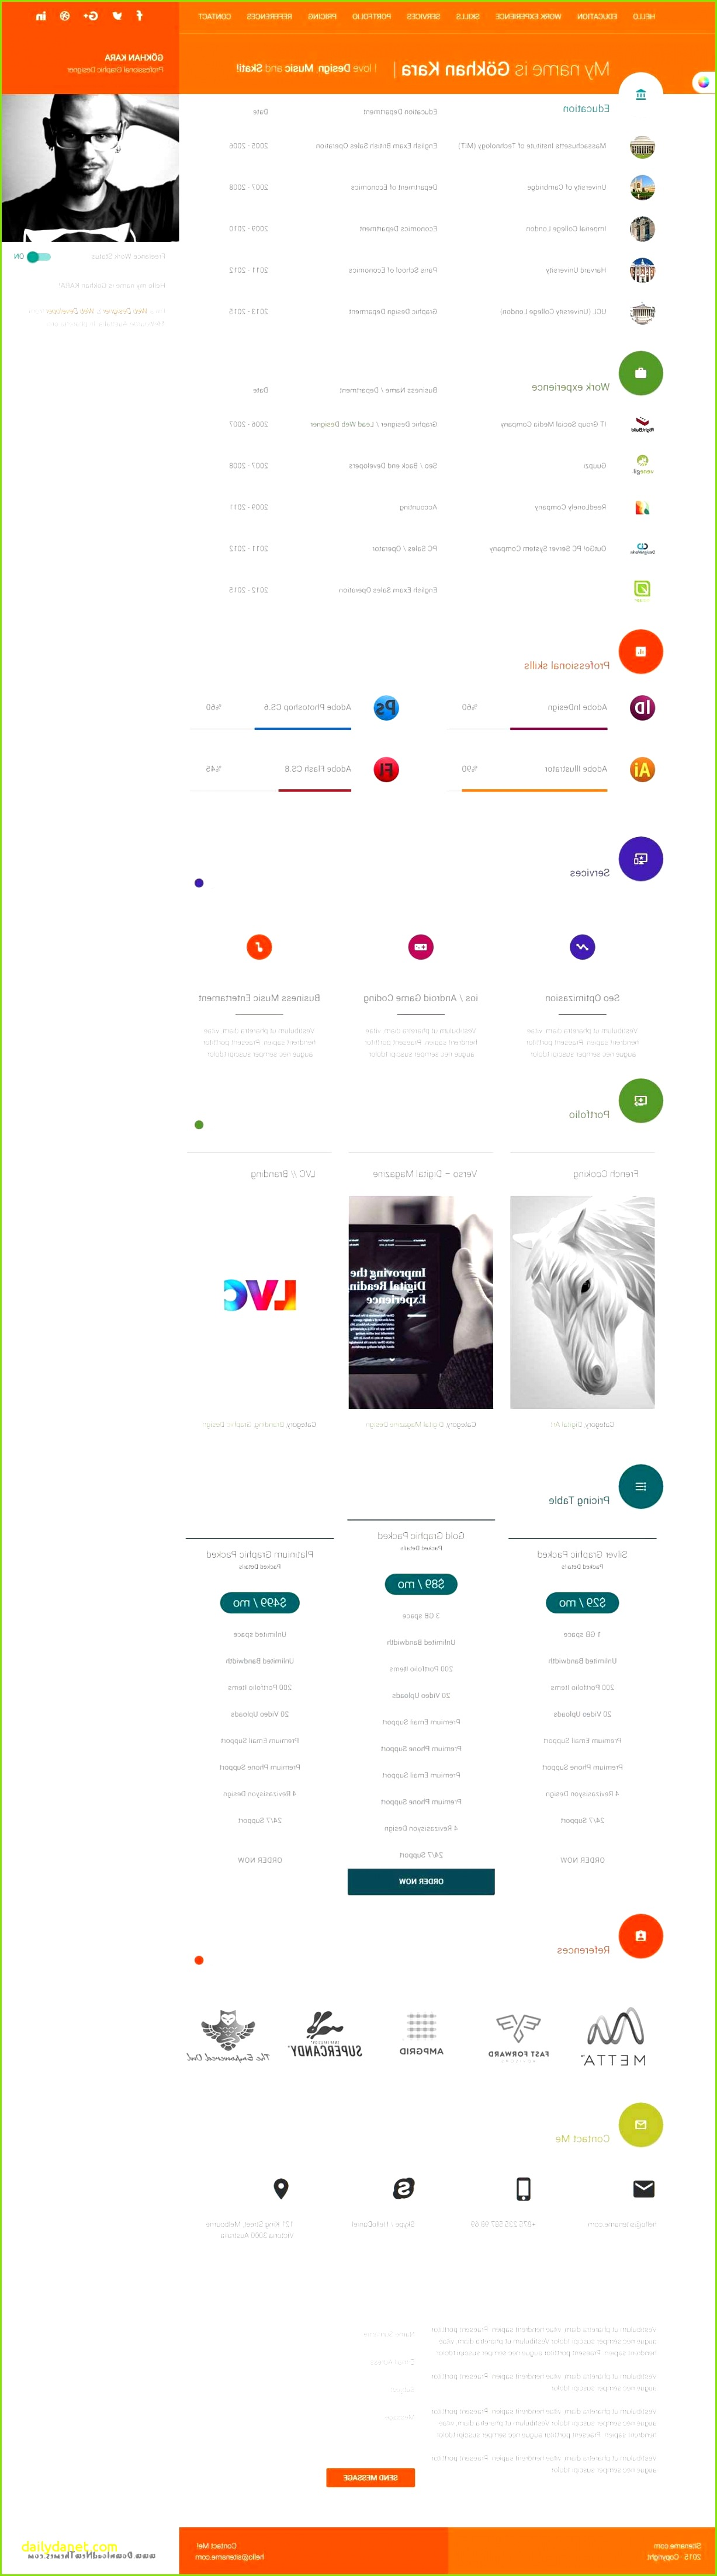 Web Templates Free 2018 Free HTML Website Templates Awesome Simple Website Templates S